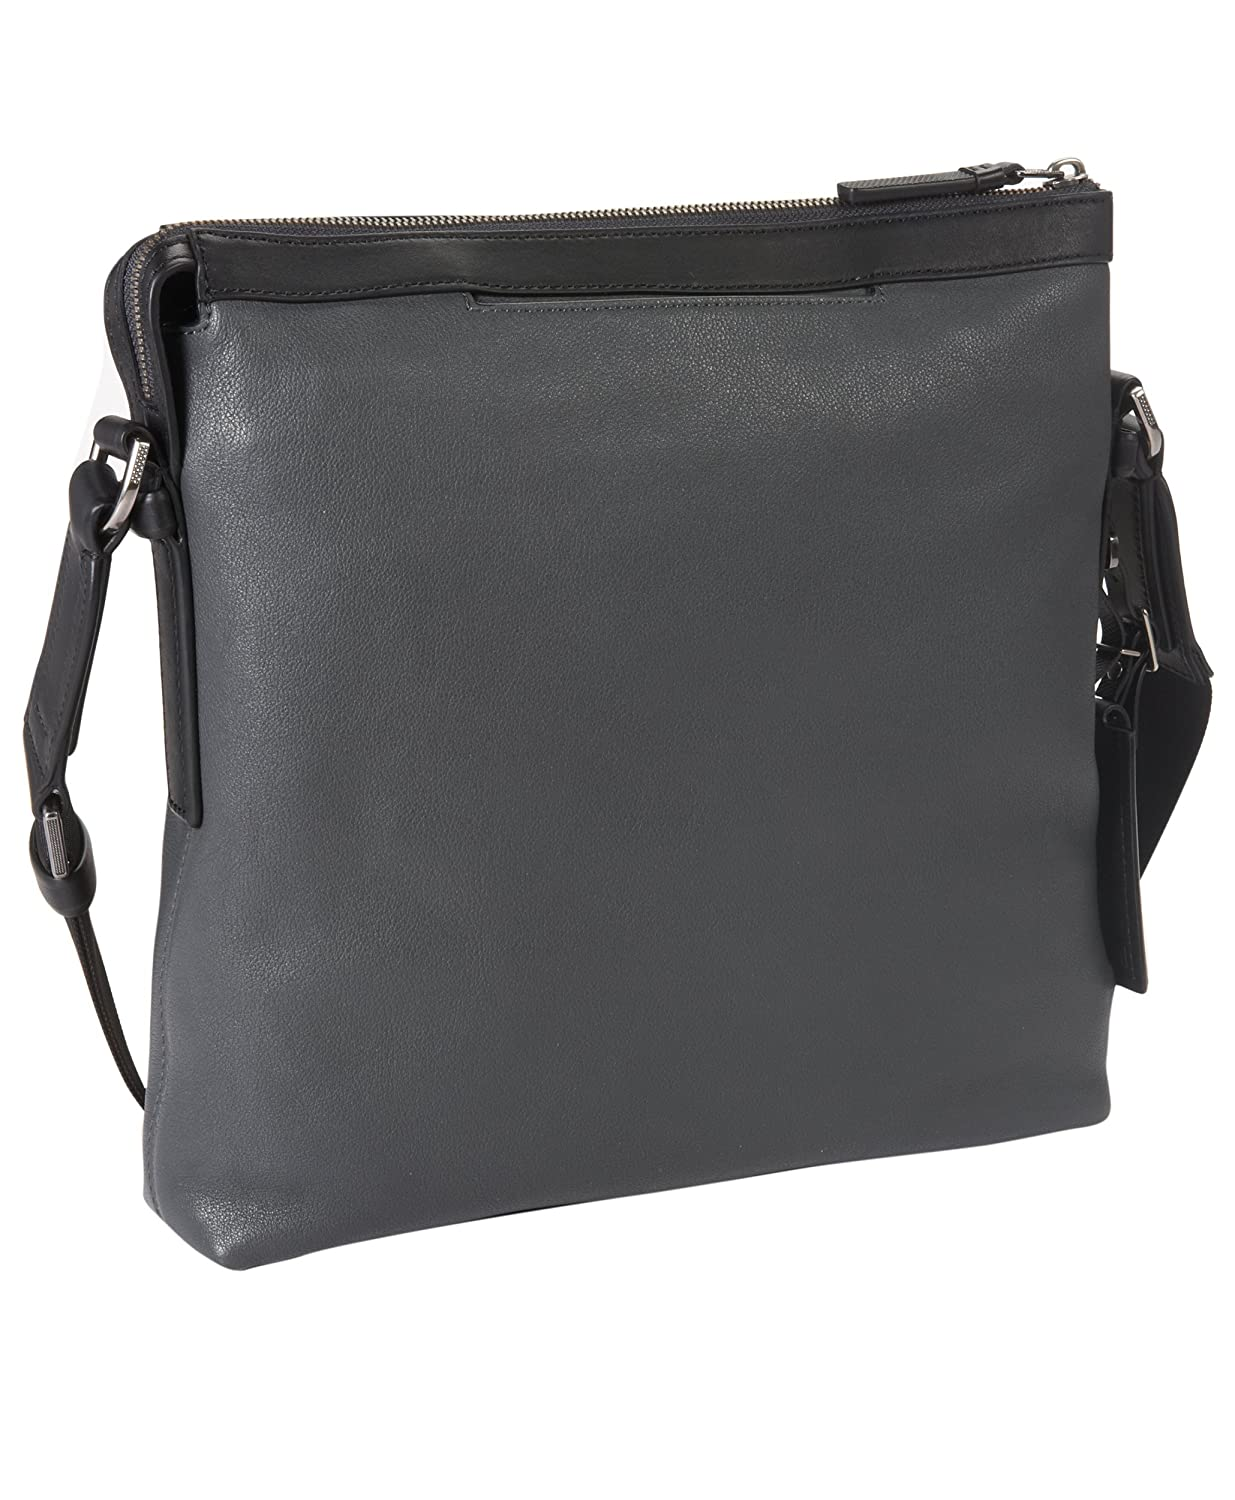 release info on latest sale outlet online Tumi Mission Bartlett Leather Crossbody, Iron: Amazon.ca ...